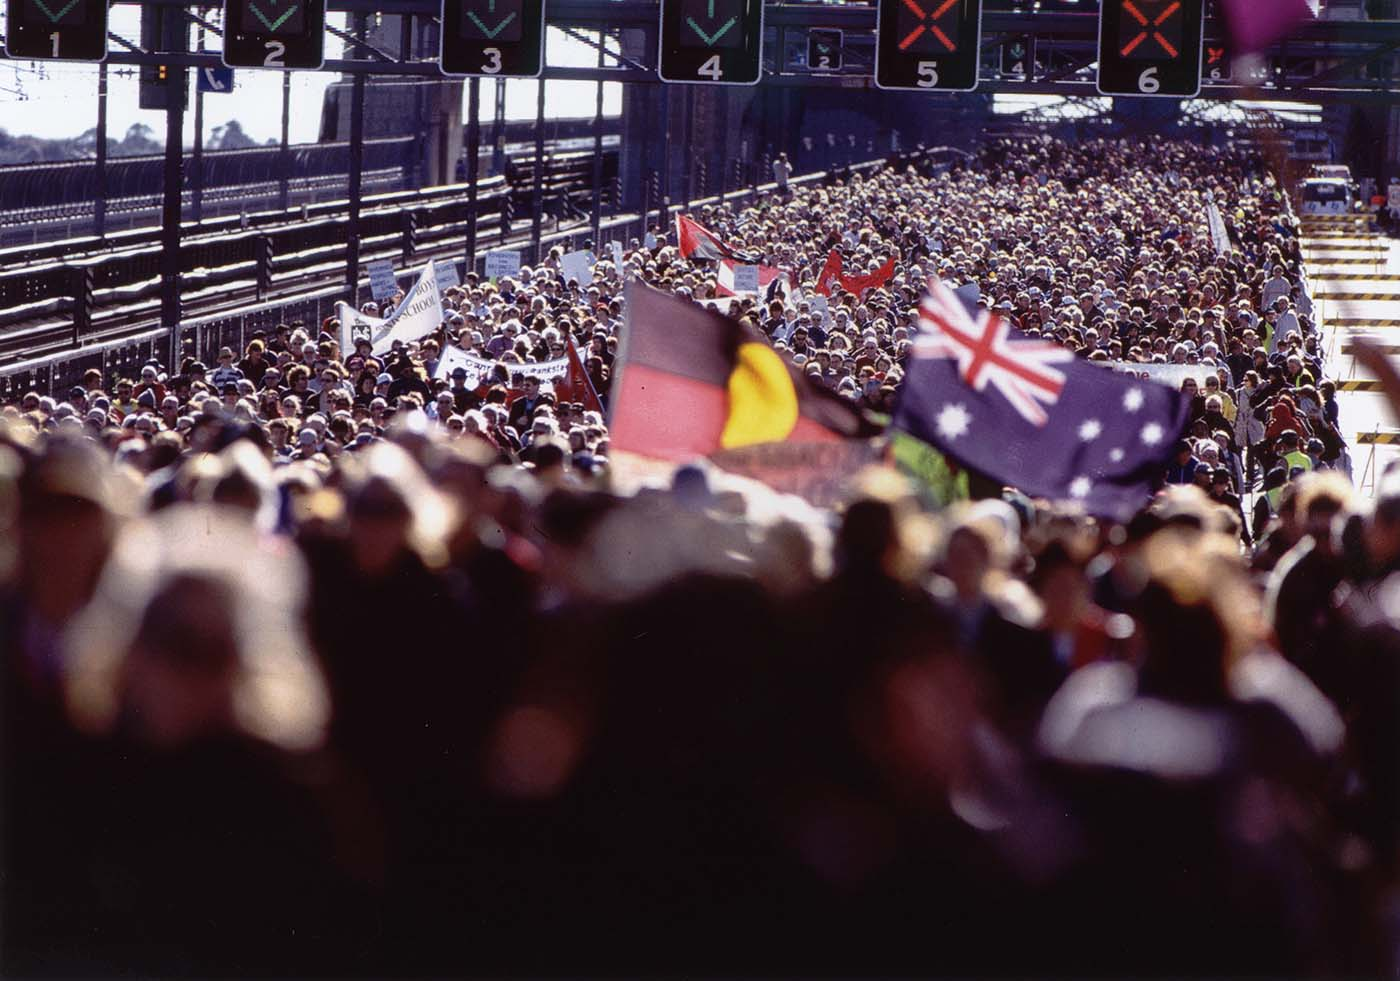 A vast crowd of people cover the roadway of the Bridge. People are carrying the Aboriginal and Australian flags. - click to view larger image